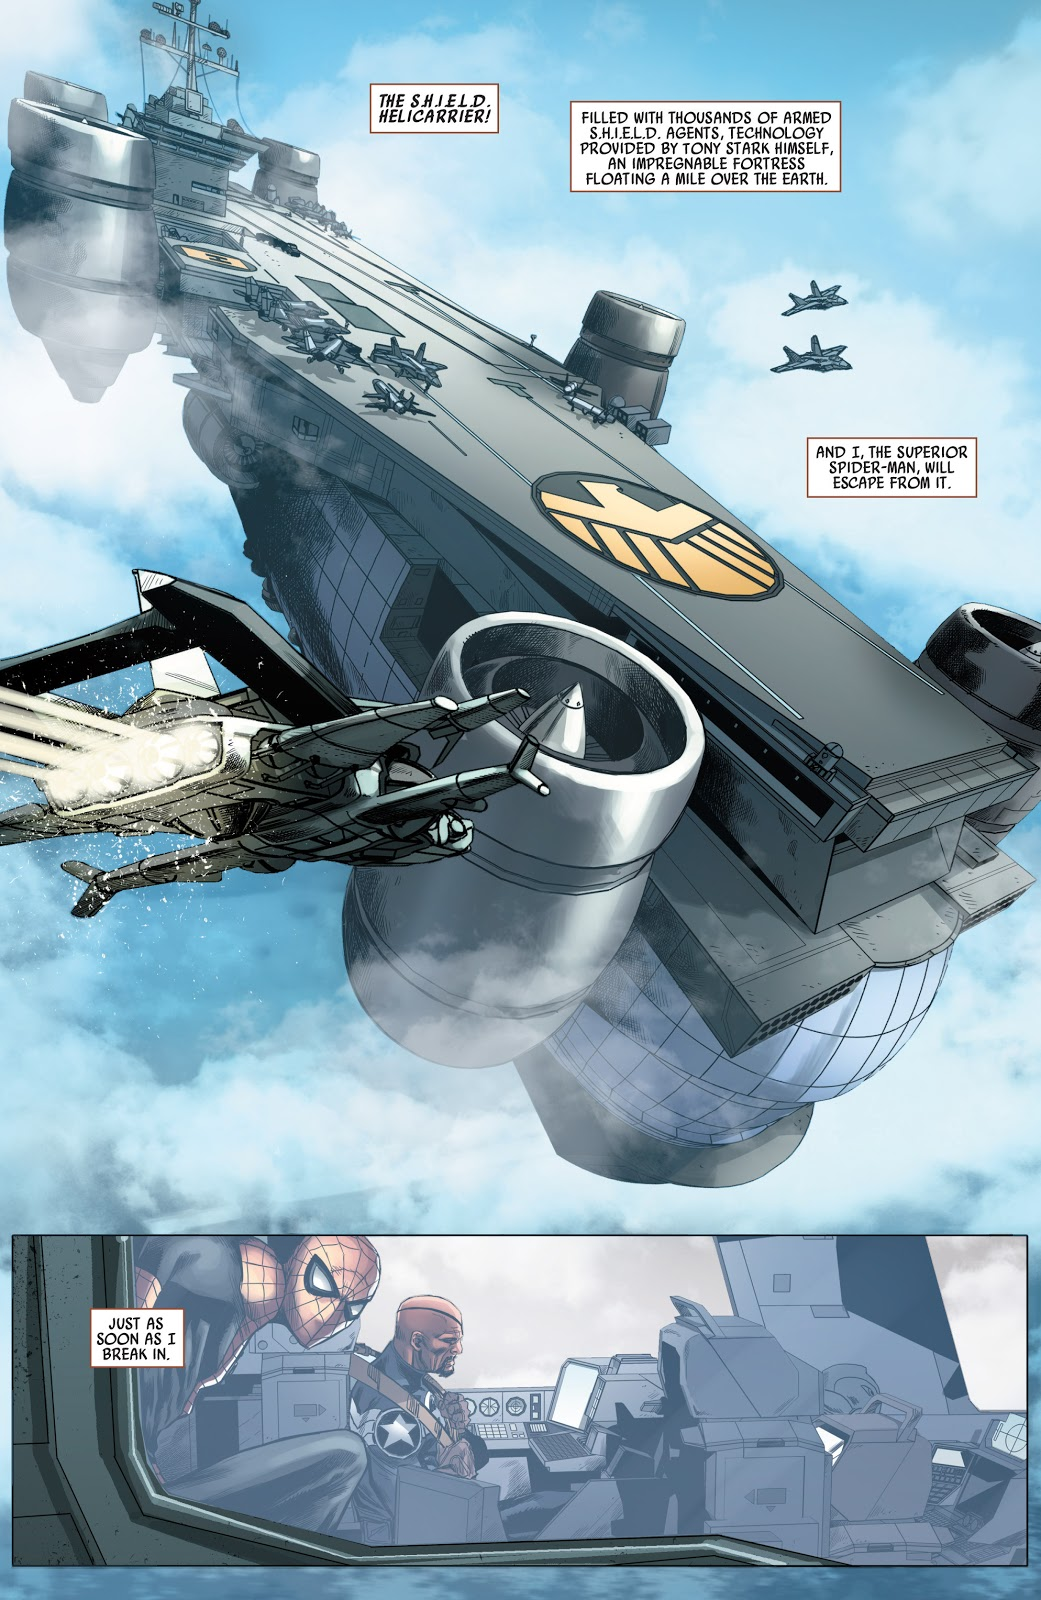 SHIELD Helicarrier (Avenging Spider-Man #20)